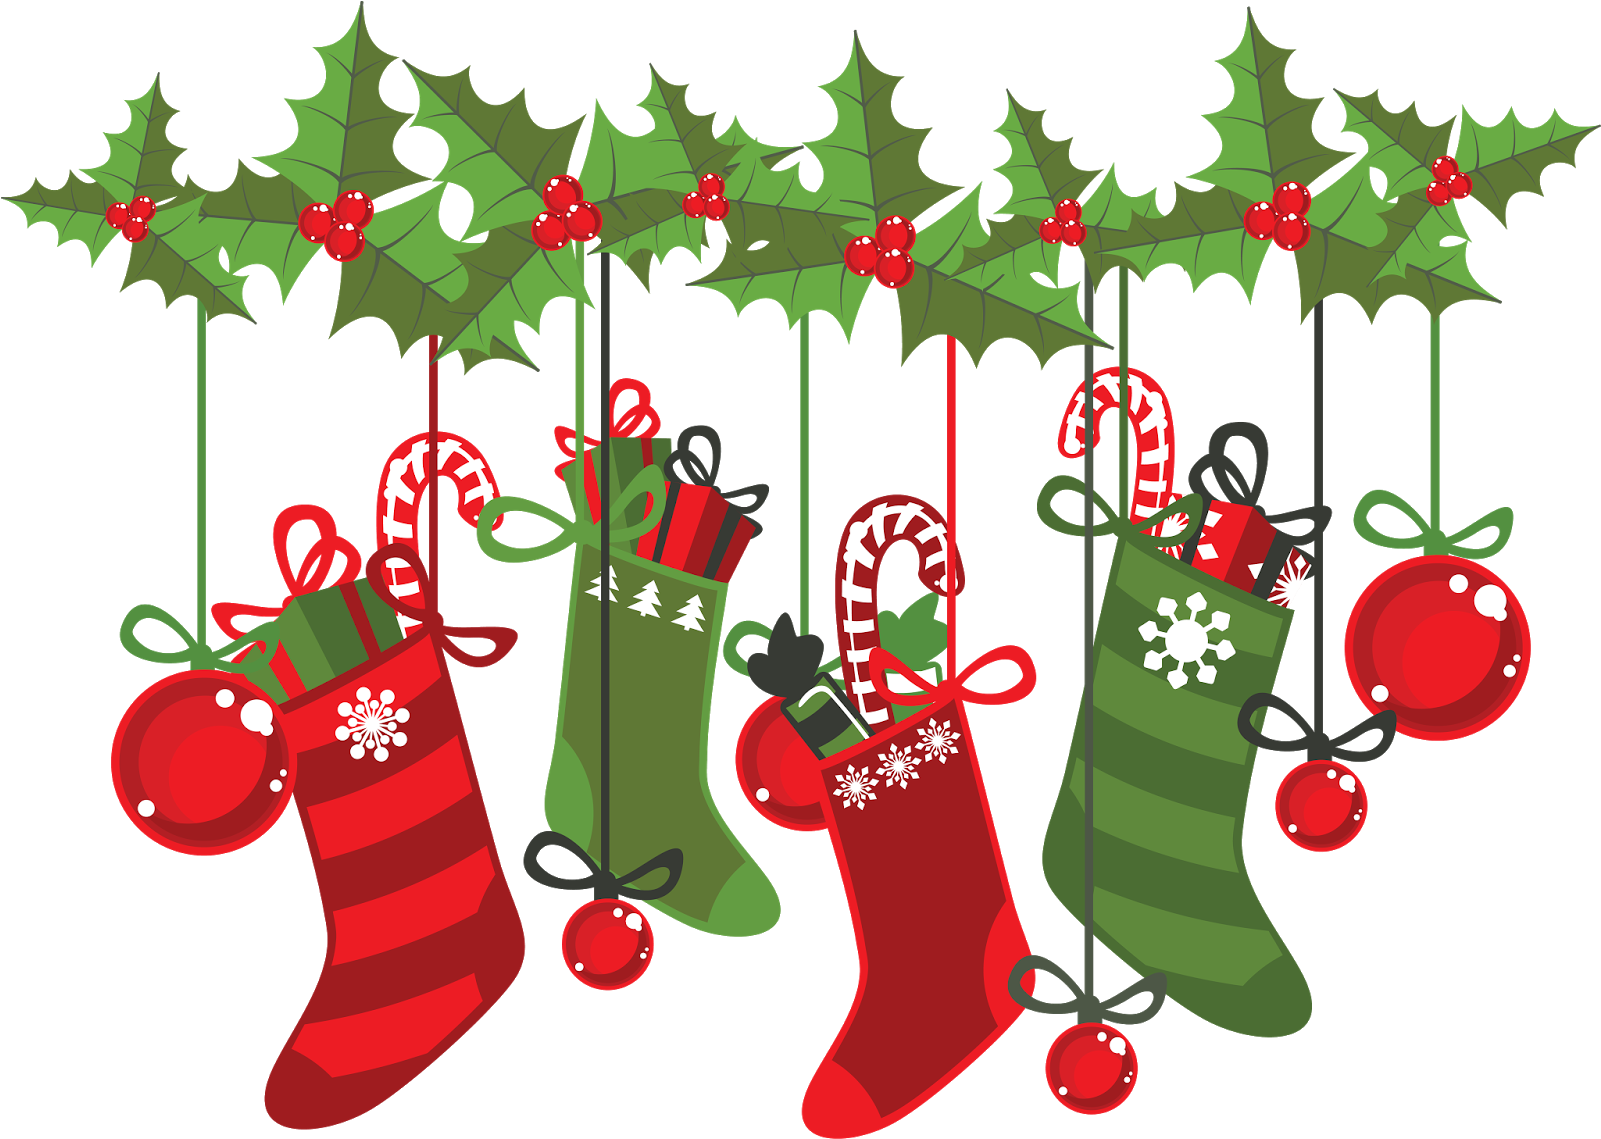 Transparent stocking clipart - Large Size Of Christmas - Christmas Stockings Clip Art